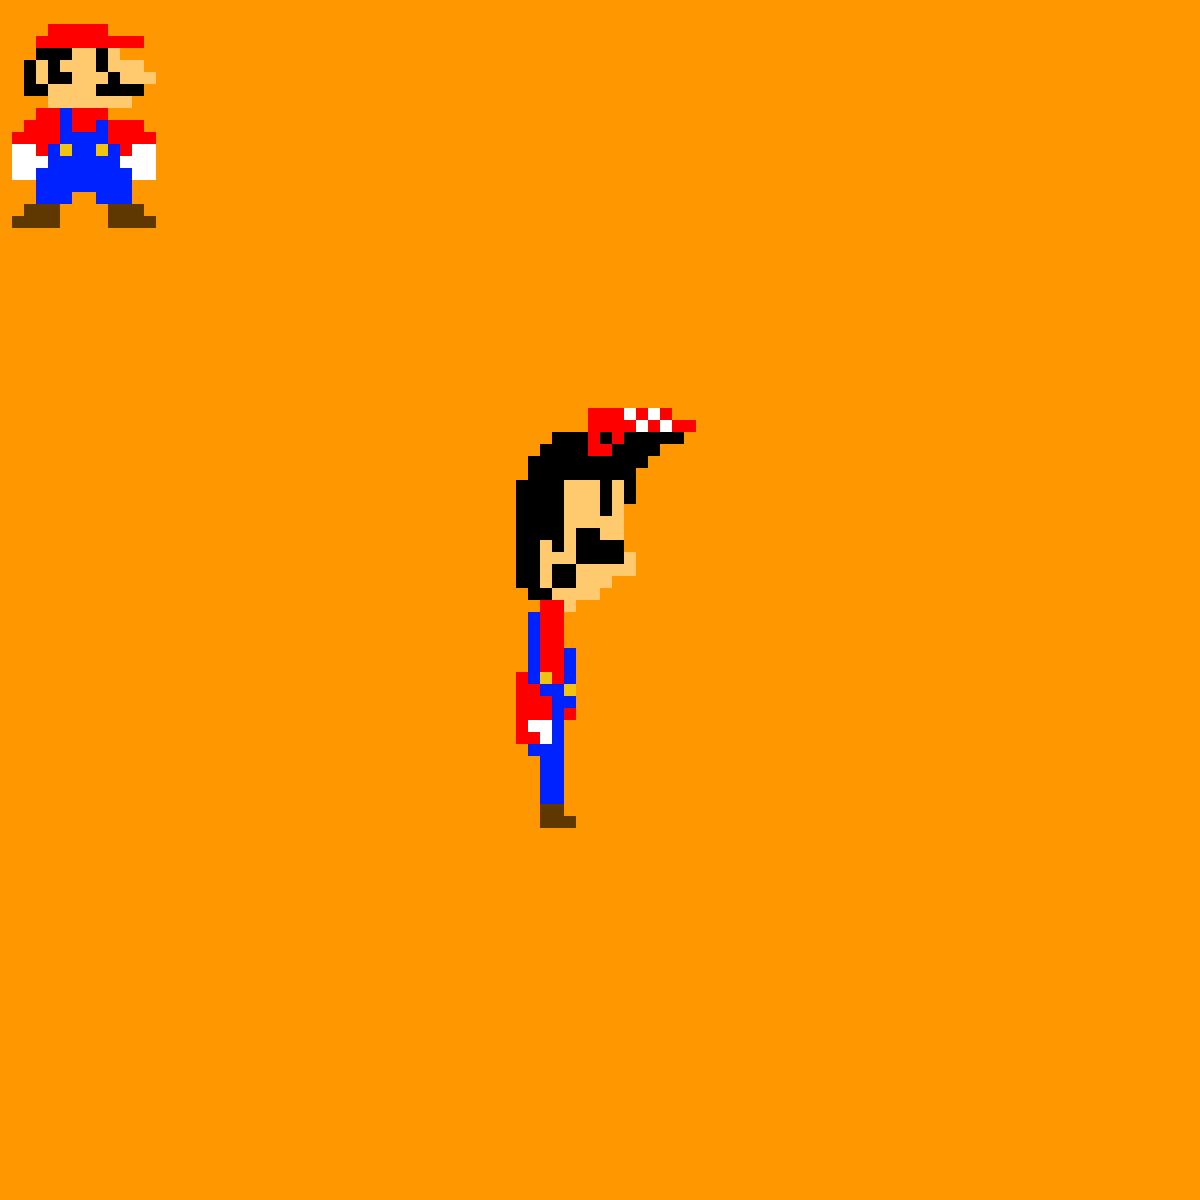 Mario in the style of a different nes game by Garfpixelfield